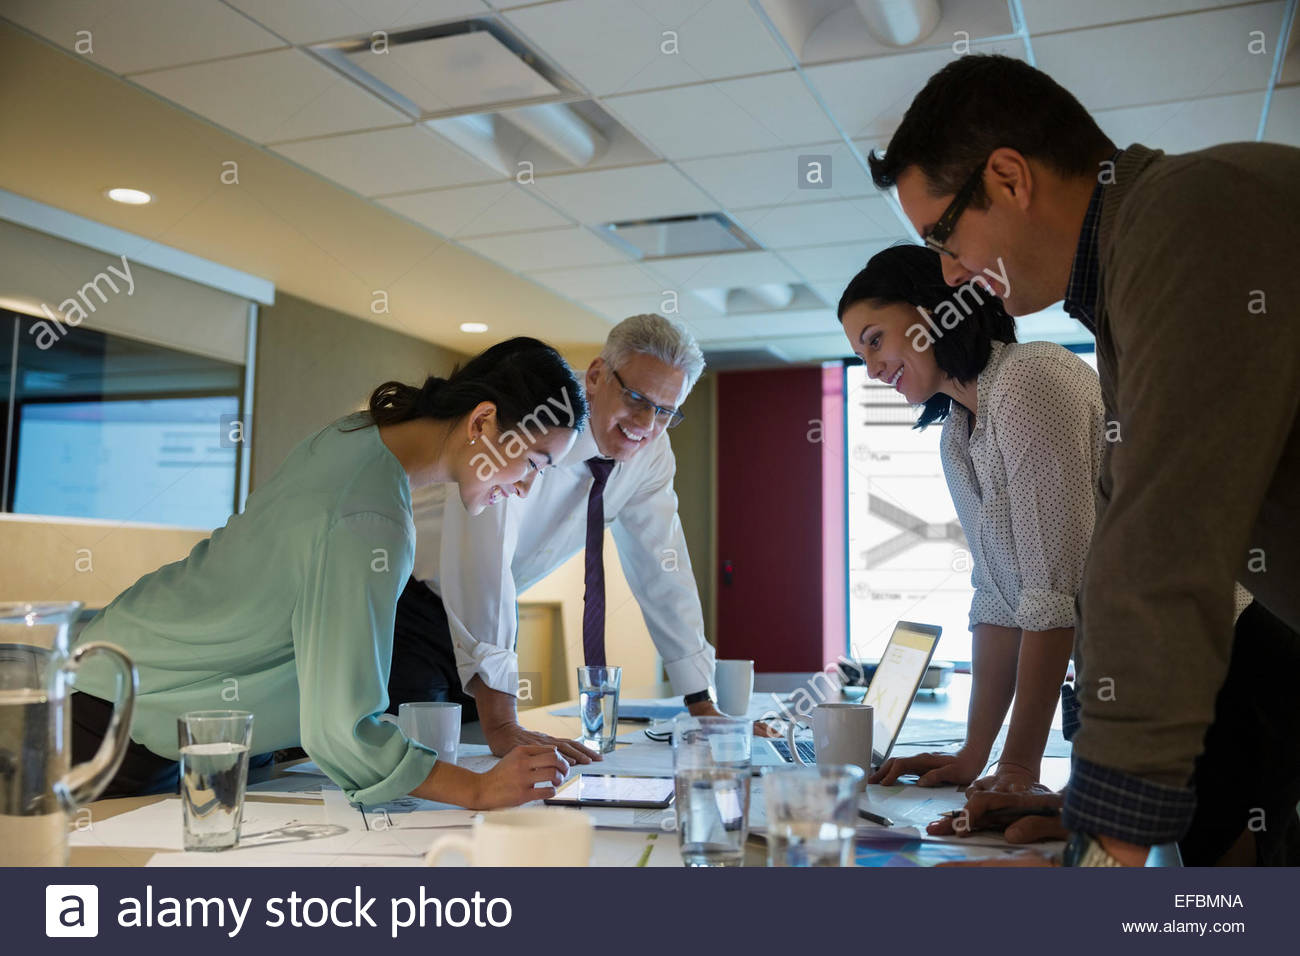 Business people meeting late in conference room - Stock Image